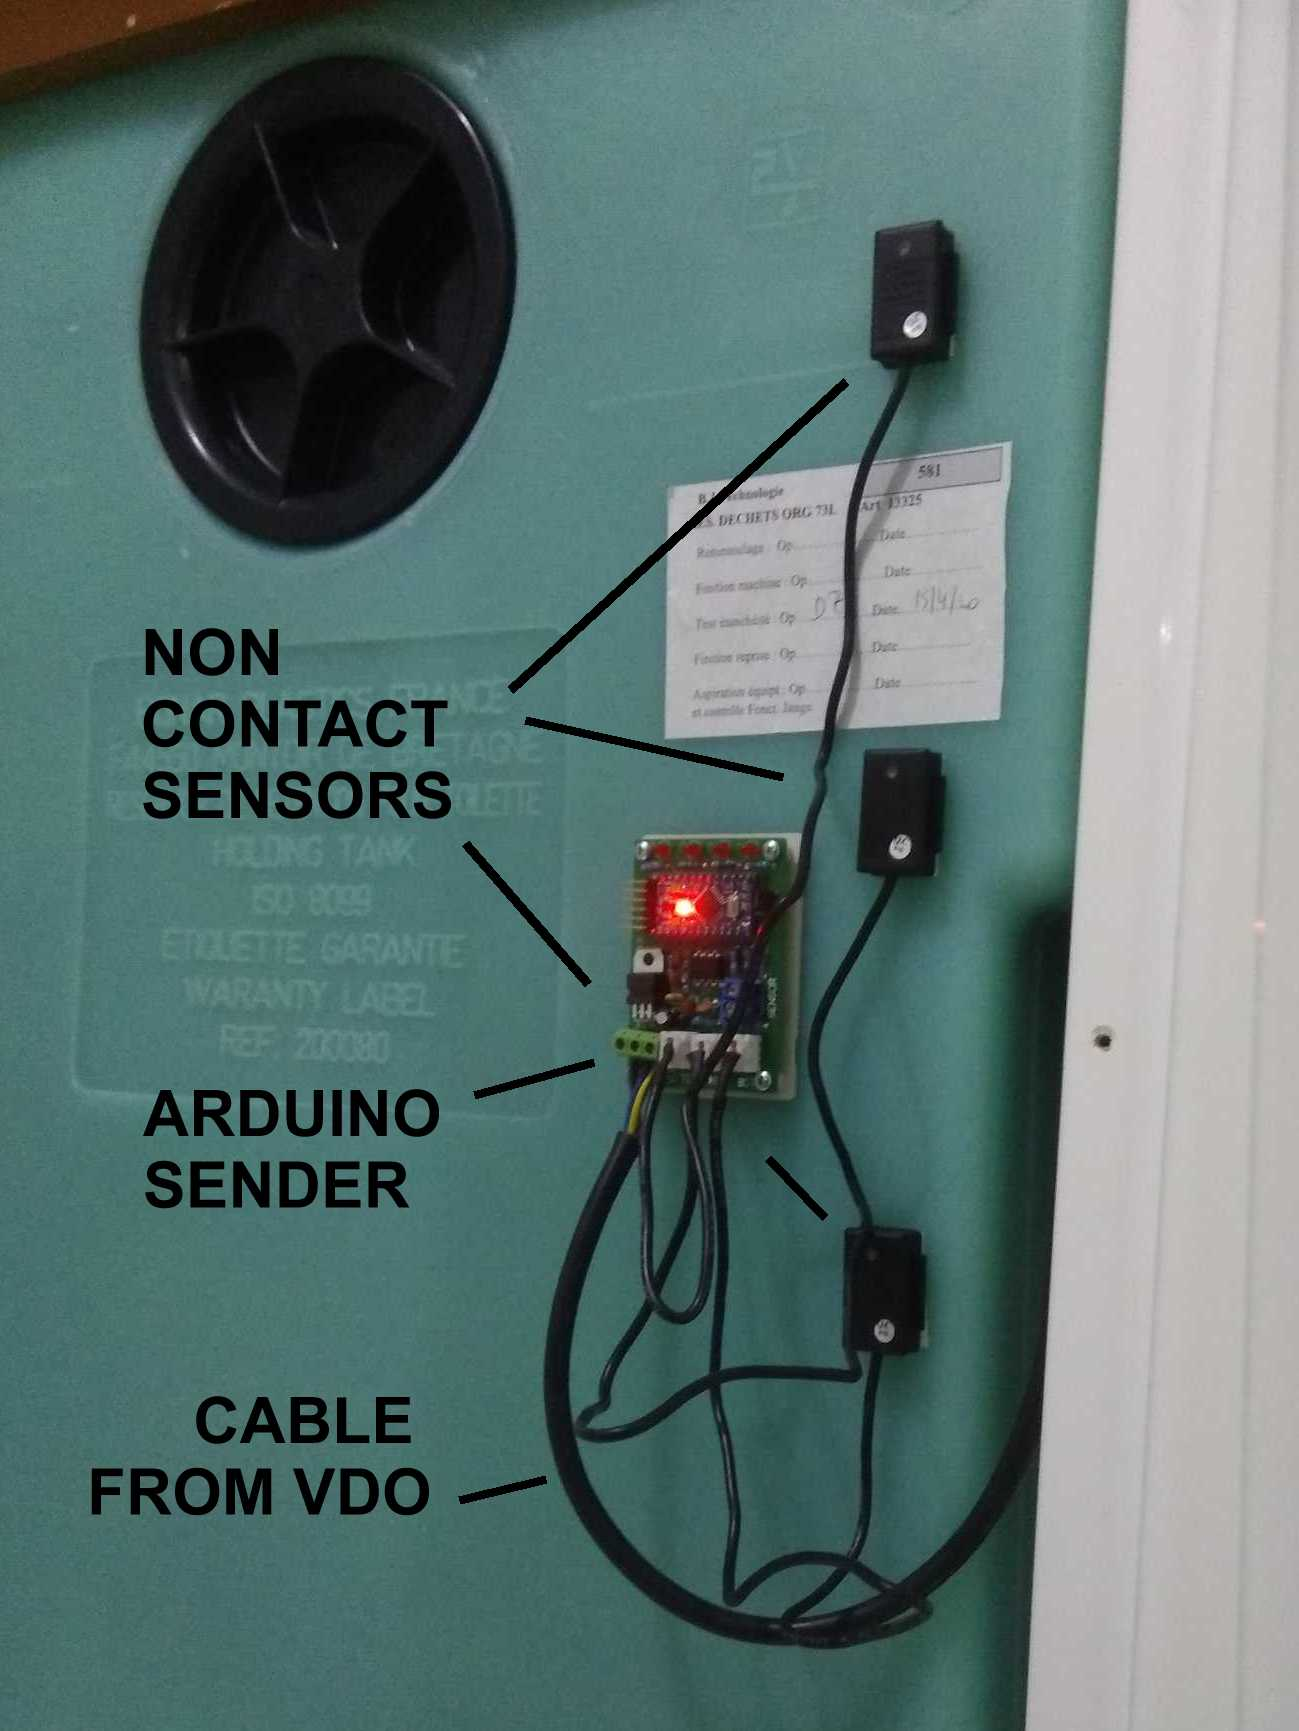 Tank Monitors Vdo Senders Wiring Diagrams How The Works